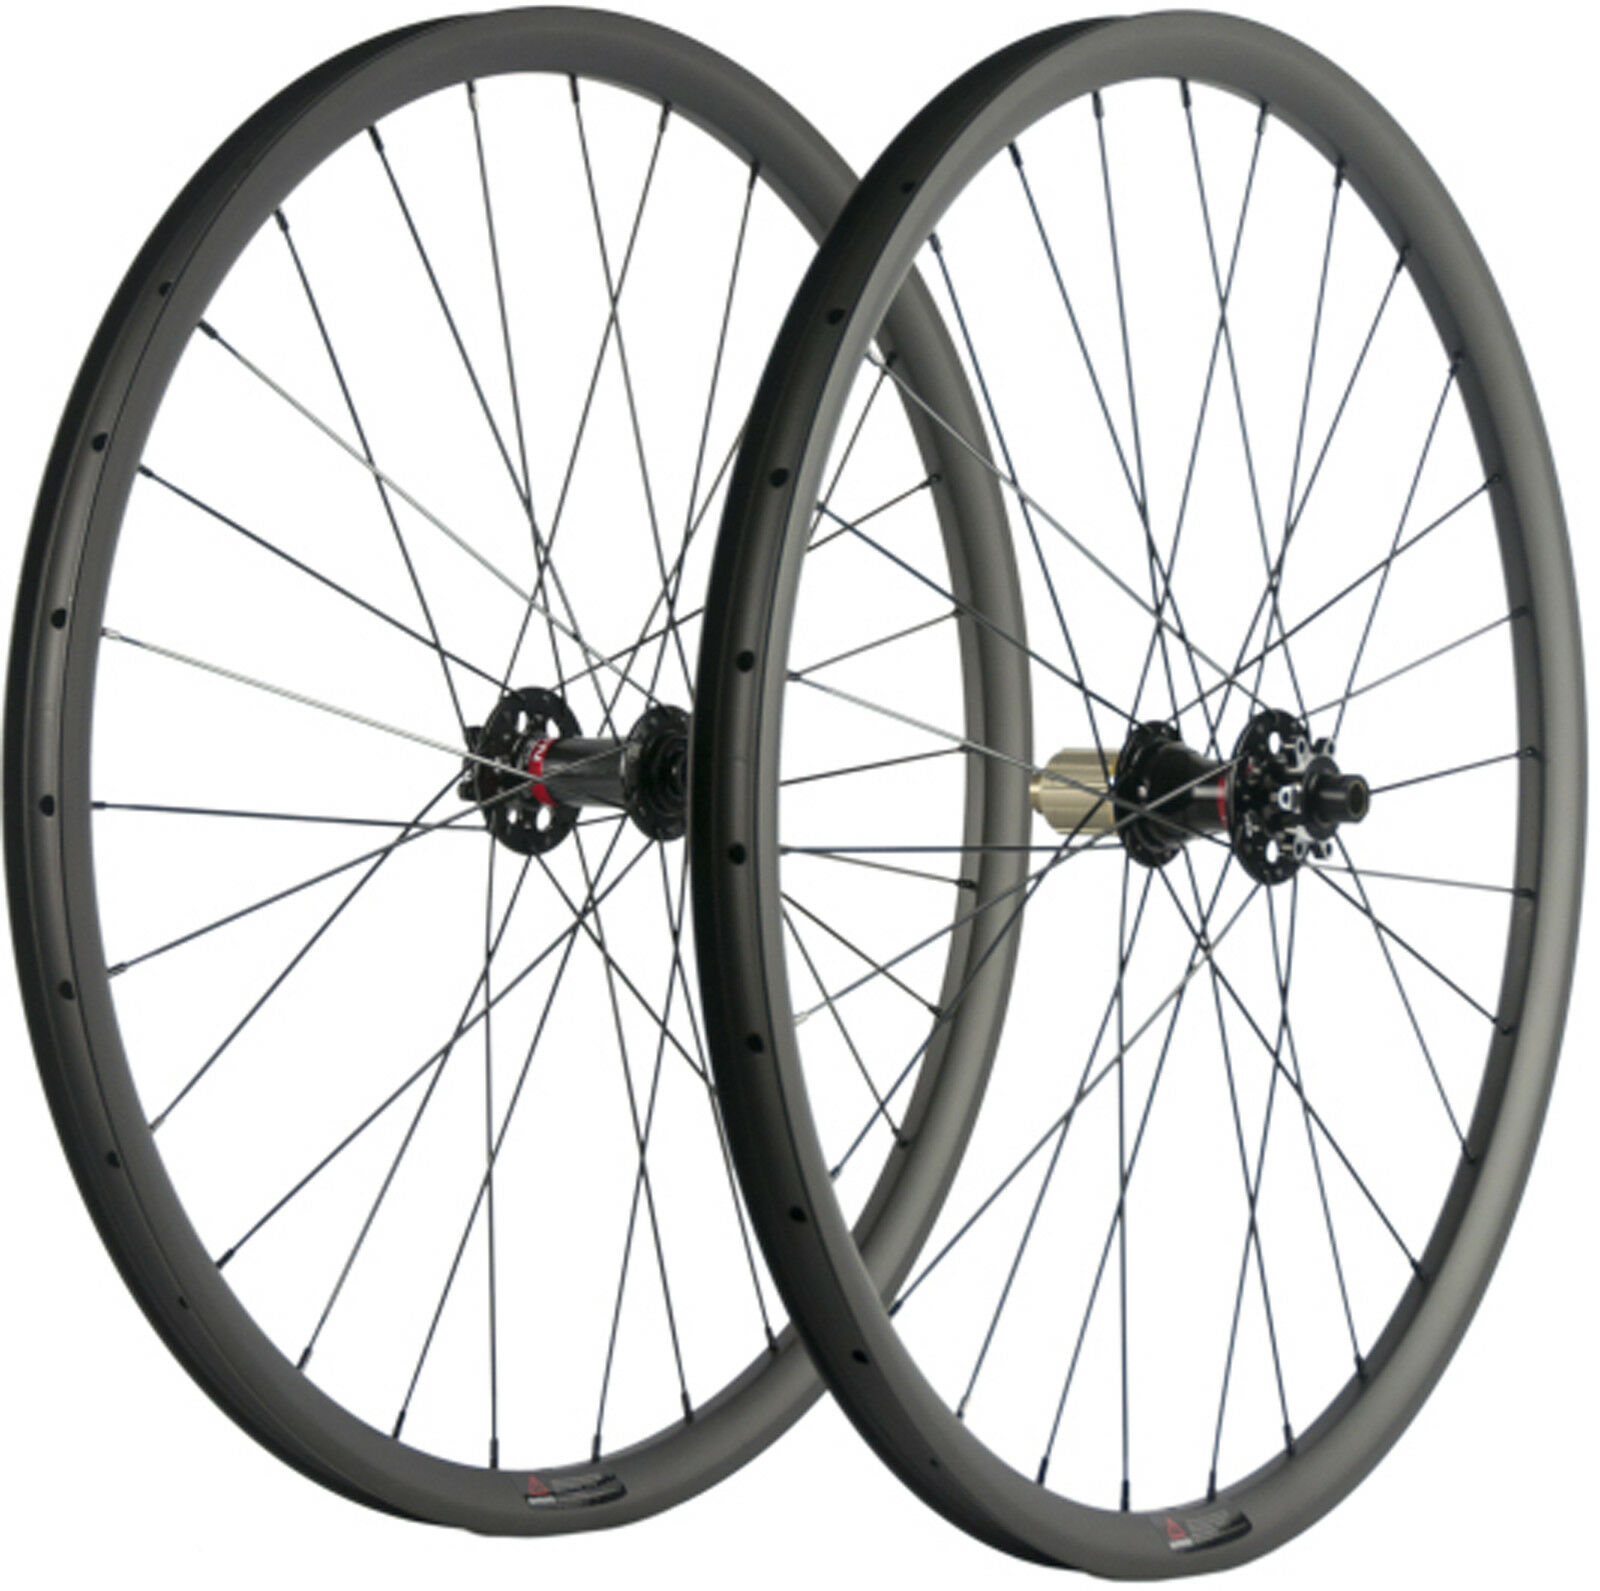 MTB Carbon  Wheelset 29ER 30mm Width Mountian Bike Wheelset Tubeless Thru Axle  creative products